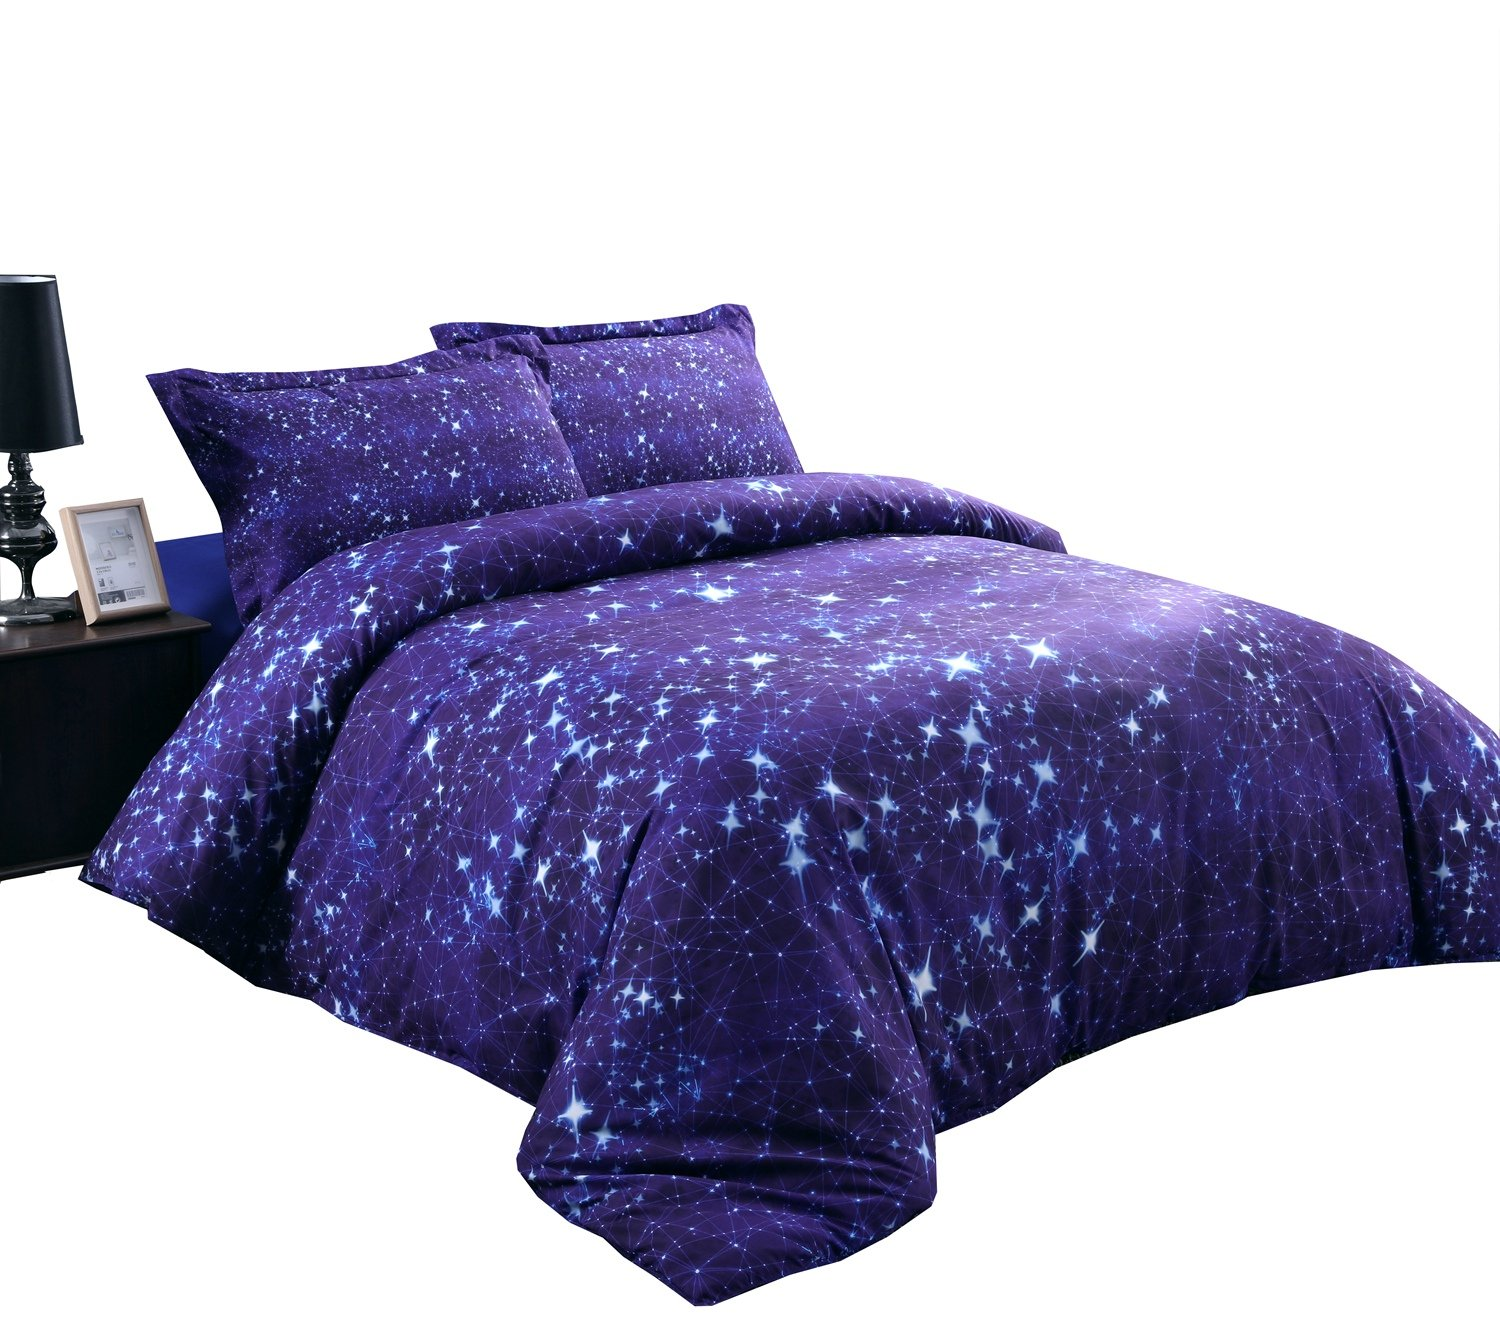 Alicemall Blue Galaxy Constellation 4-Piece Duvet Cover Sets, Super Soft Cotton and Tencel Blended Unique Galaxy Bedroom Sheets Sets, No Comforter, Twin Size College Bedding (Twin, Blue Constellation)